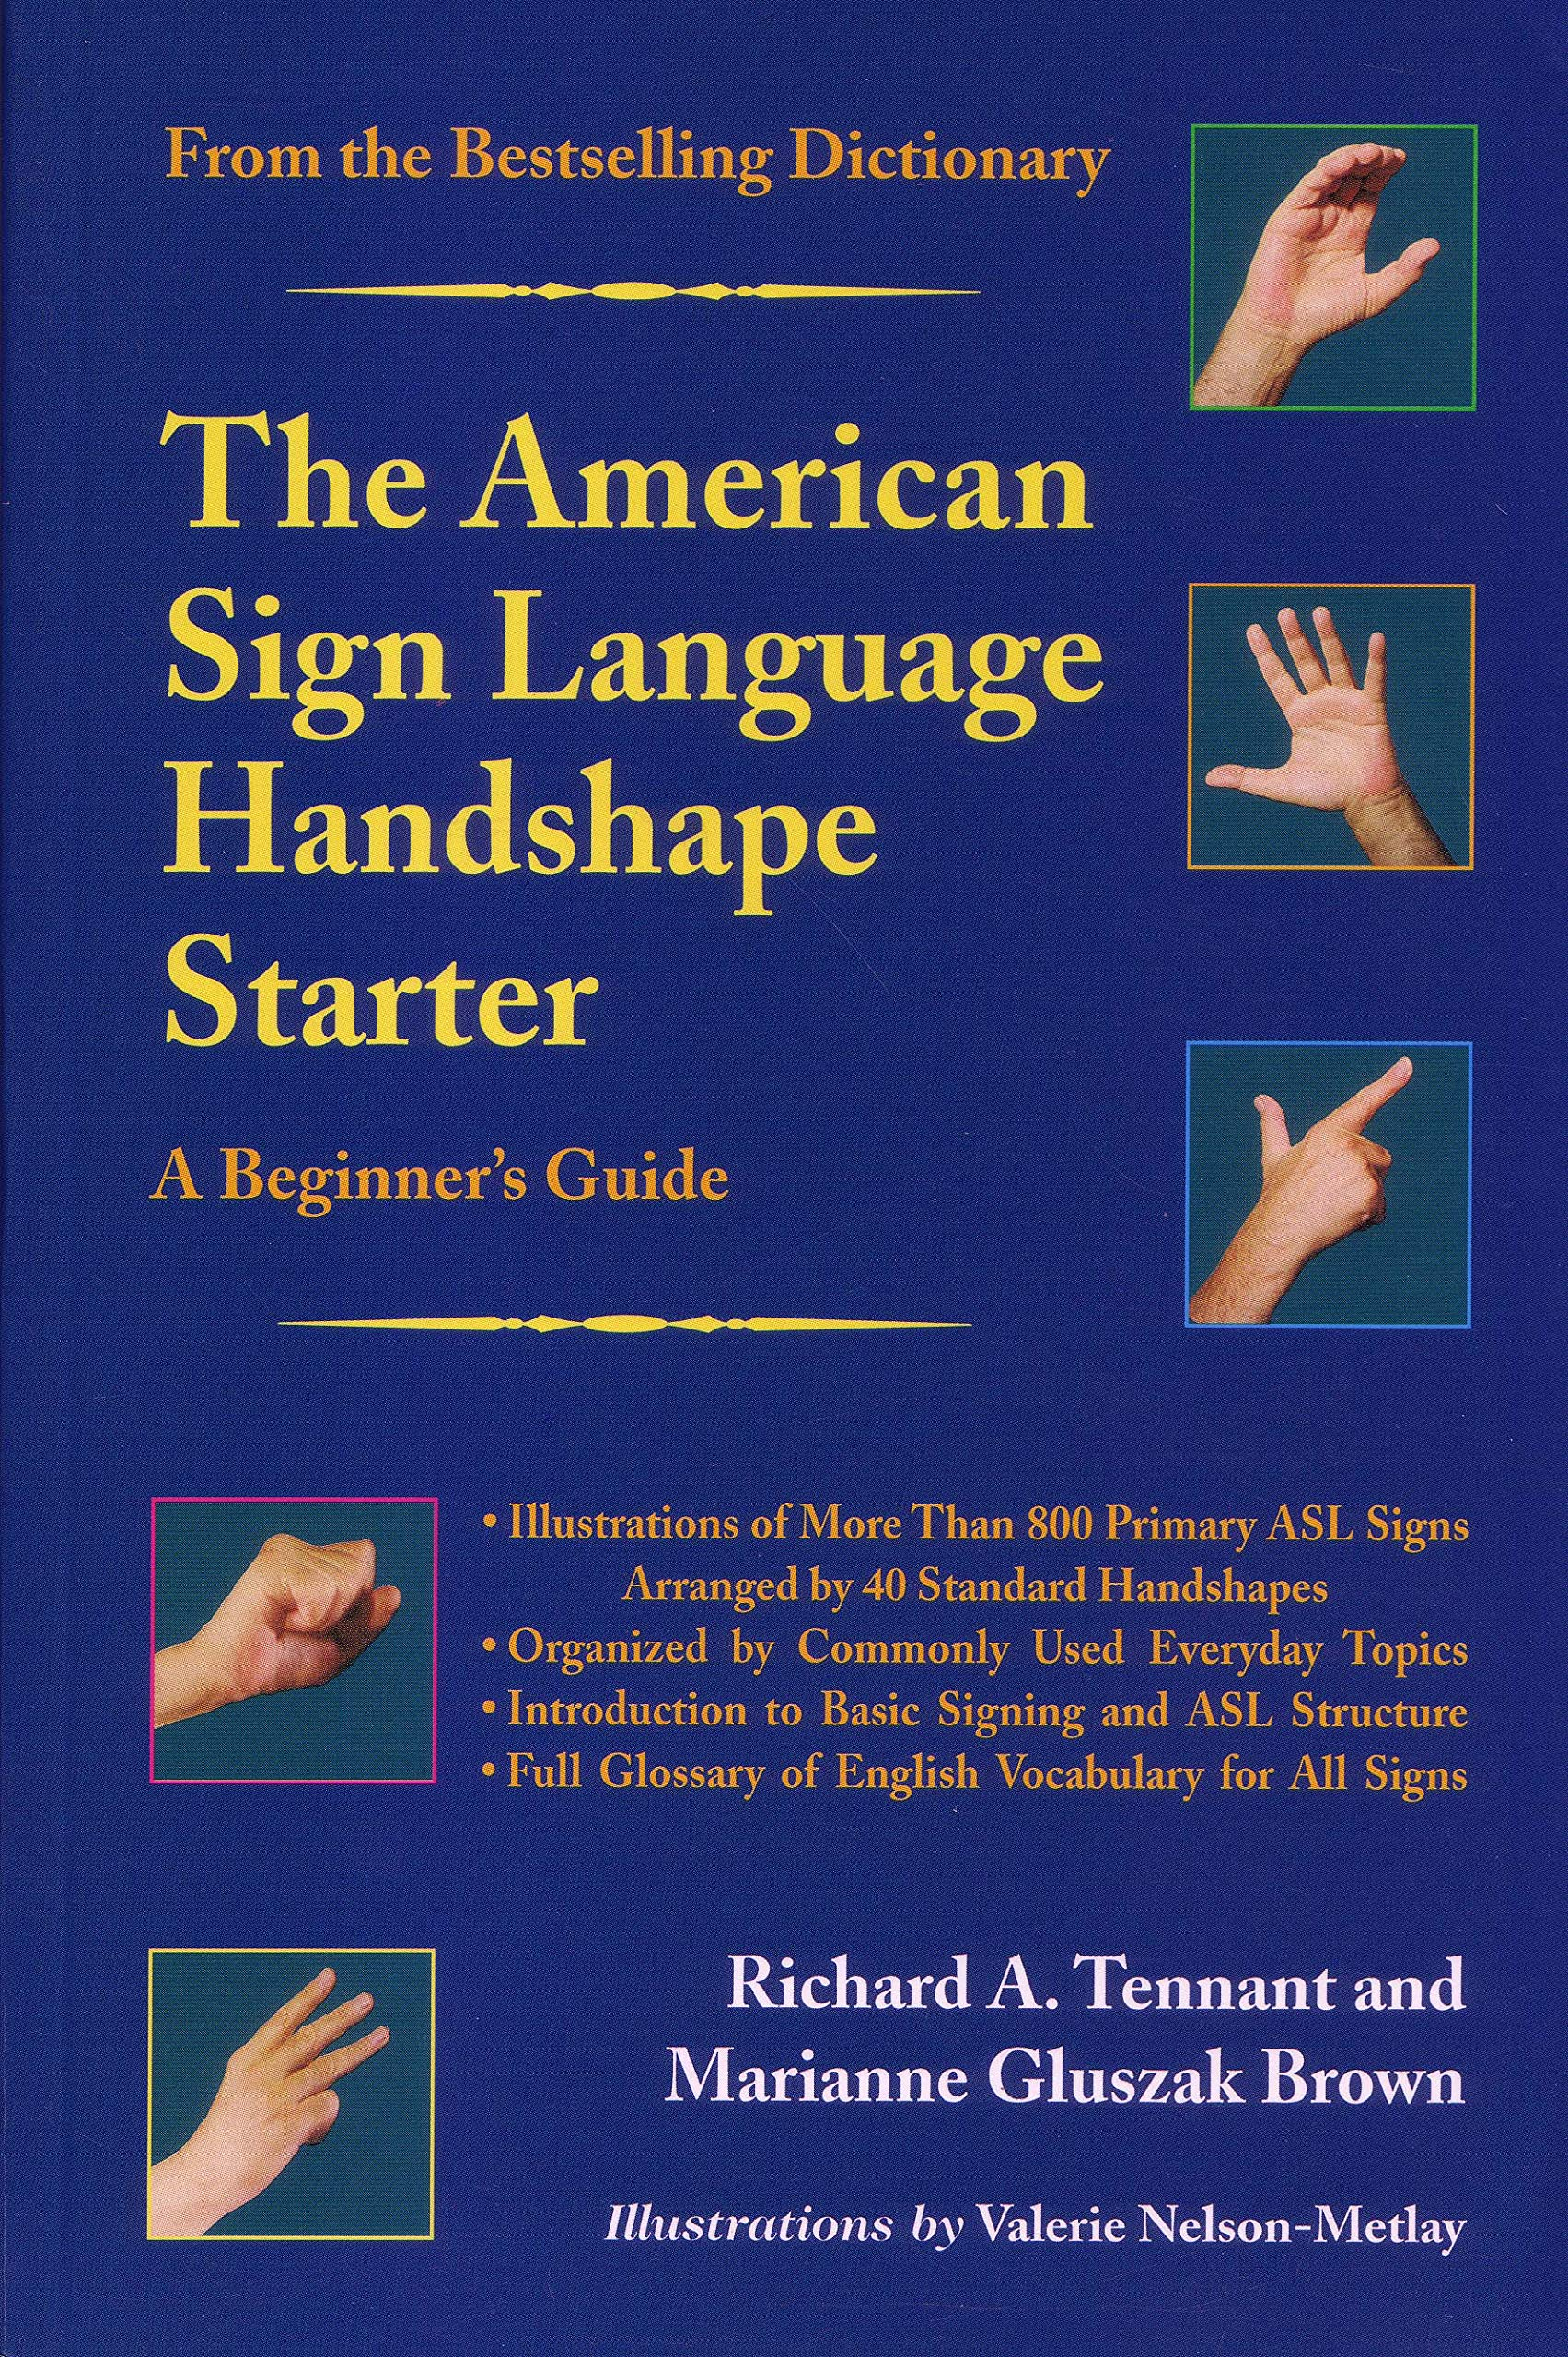 The American Sign Language Handshape Starter: A Beginner's Guide by Gallaudet University Press